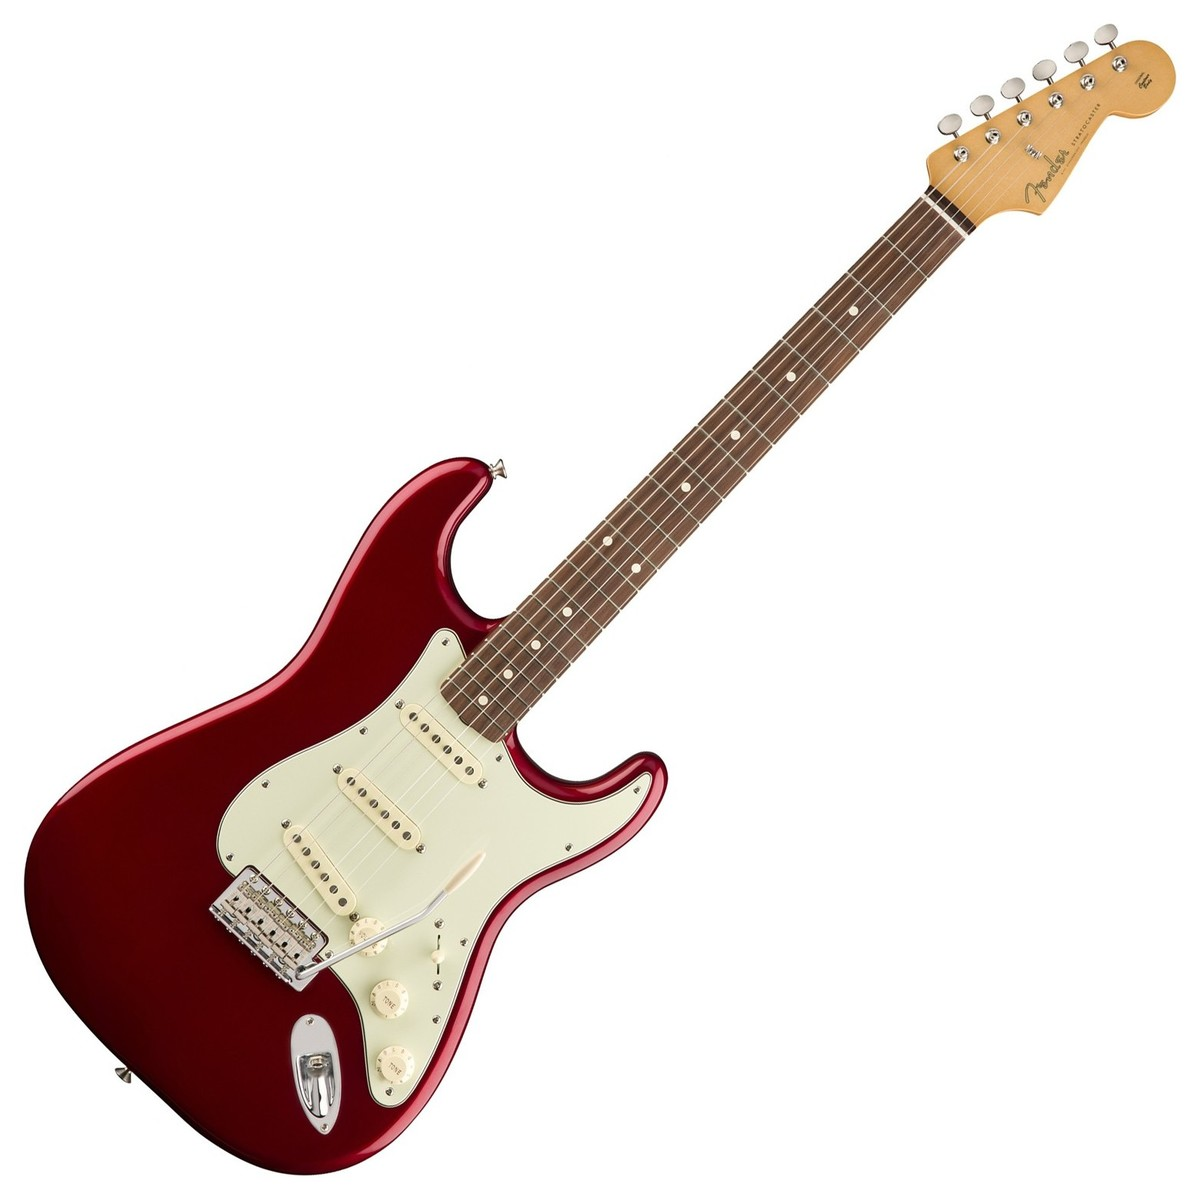 fender classic series 60s stratocaster pw candy apple red at gear4music. Black Bedroom Furniture Sets. Home Design Ideas